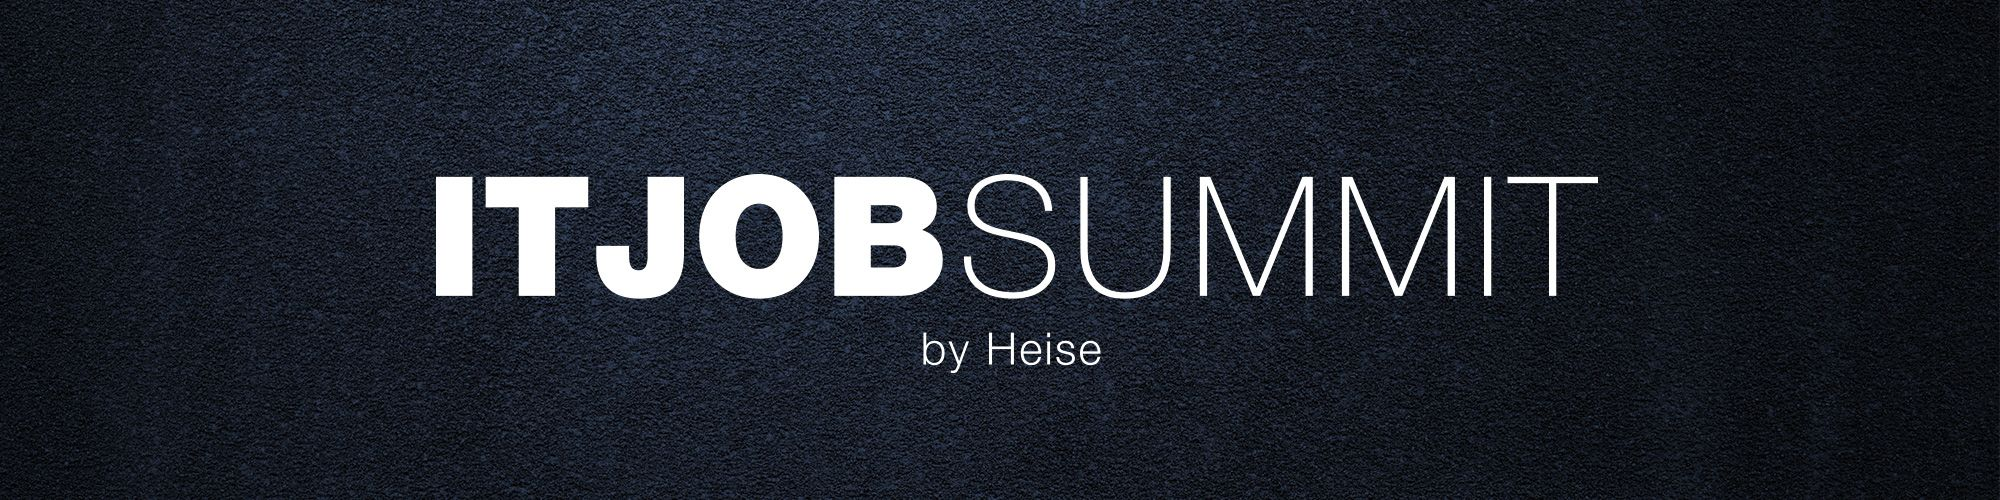 IT-Job Summit